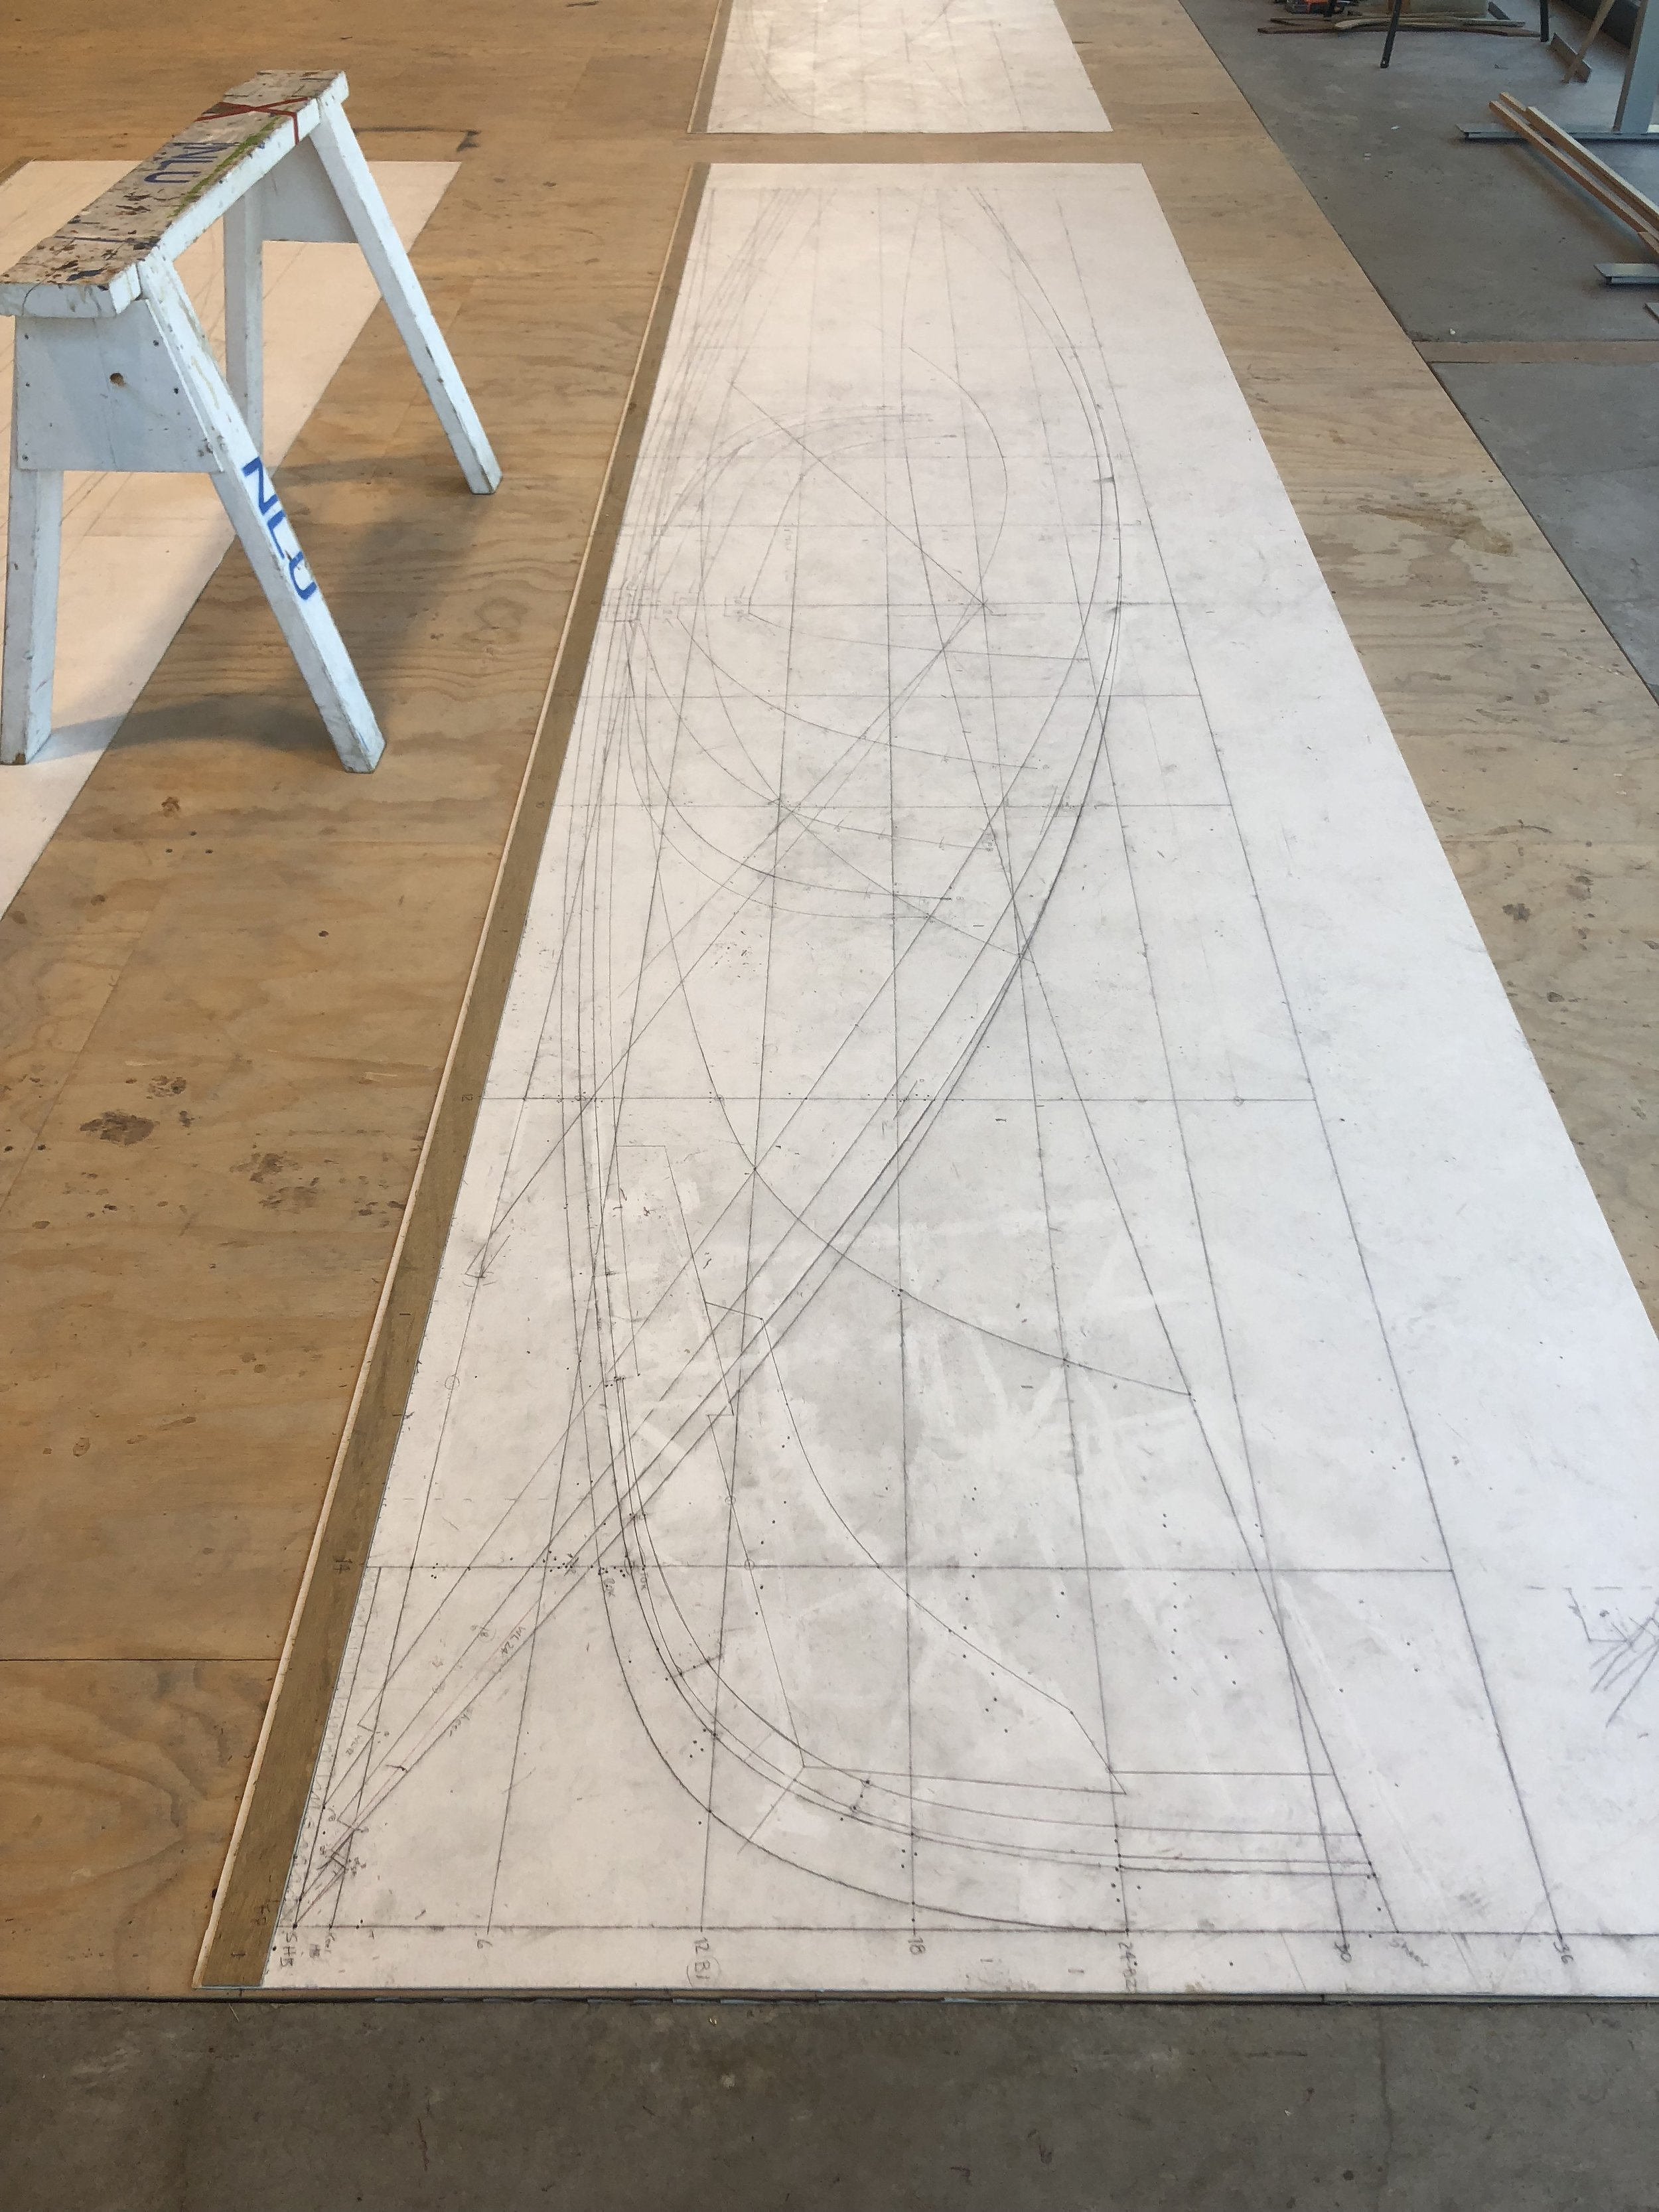 Boat Plans on Floor Sketch